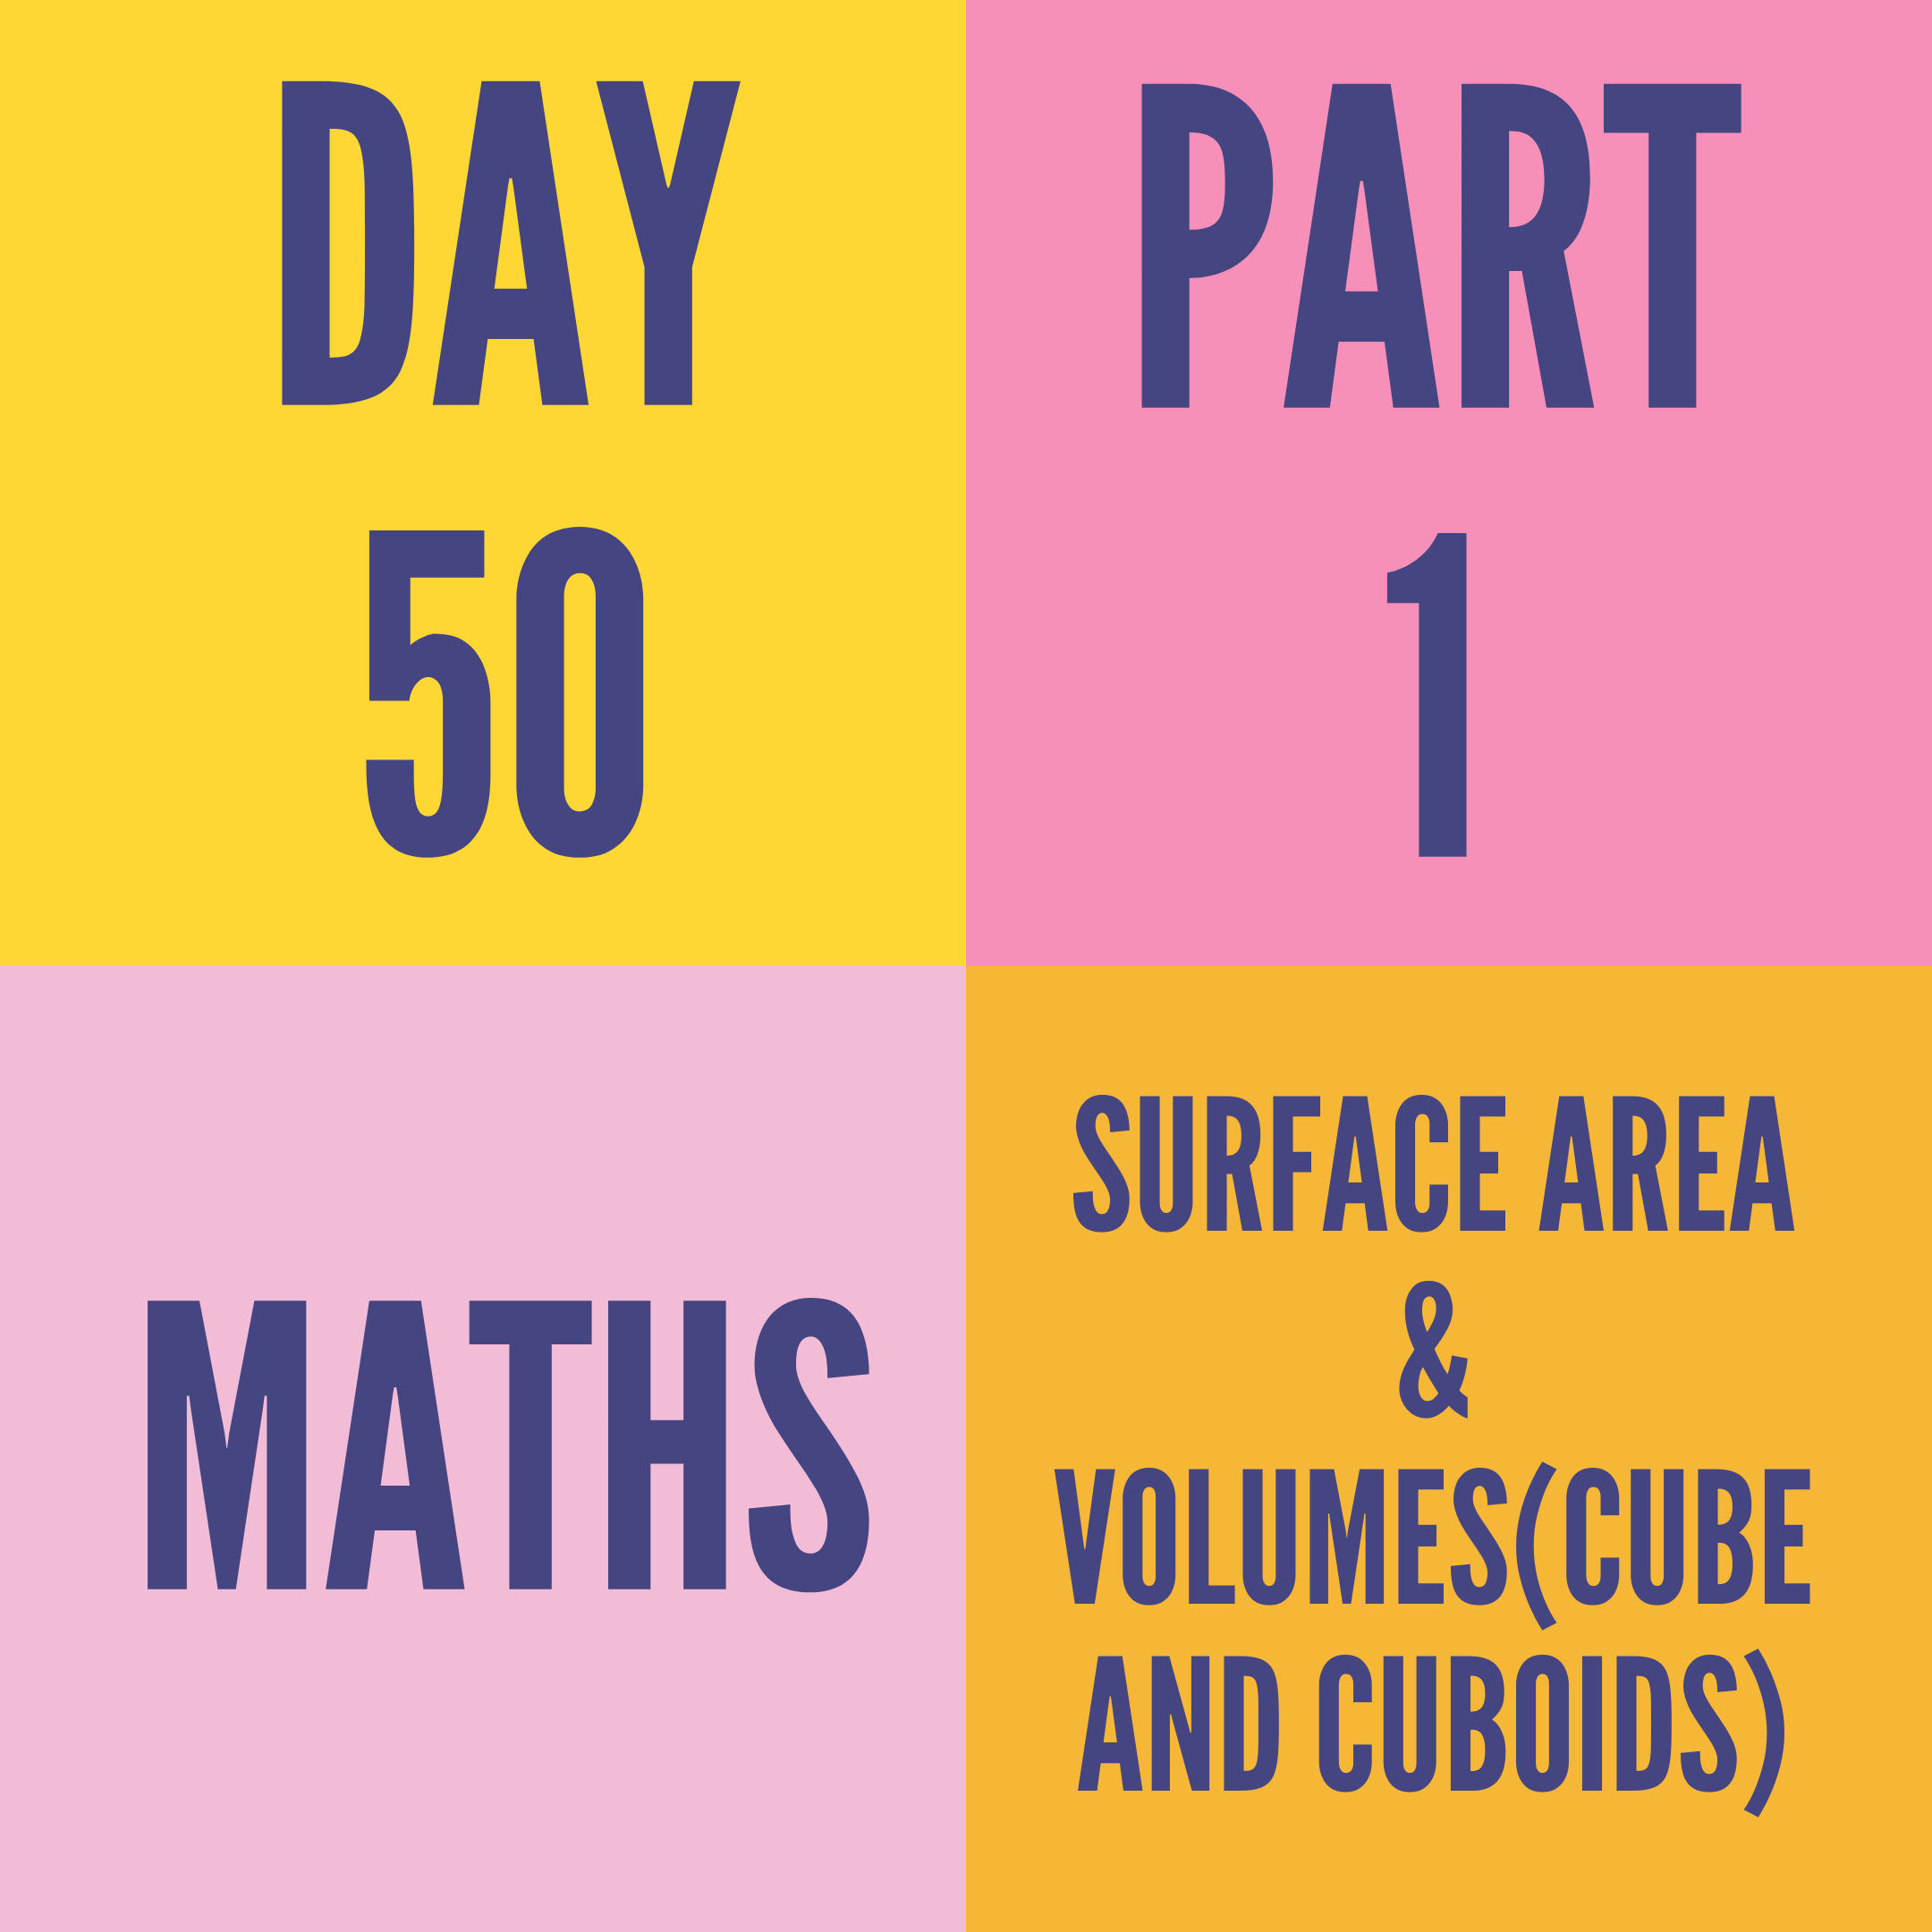 DAY-50 PART-1 SURFACE AREA & VOLUMES(CUBE AND CUBOIDS)